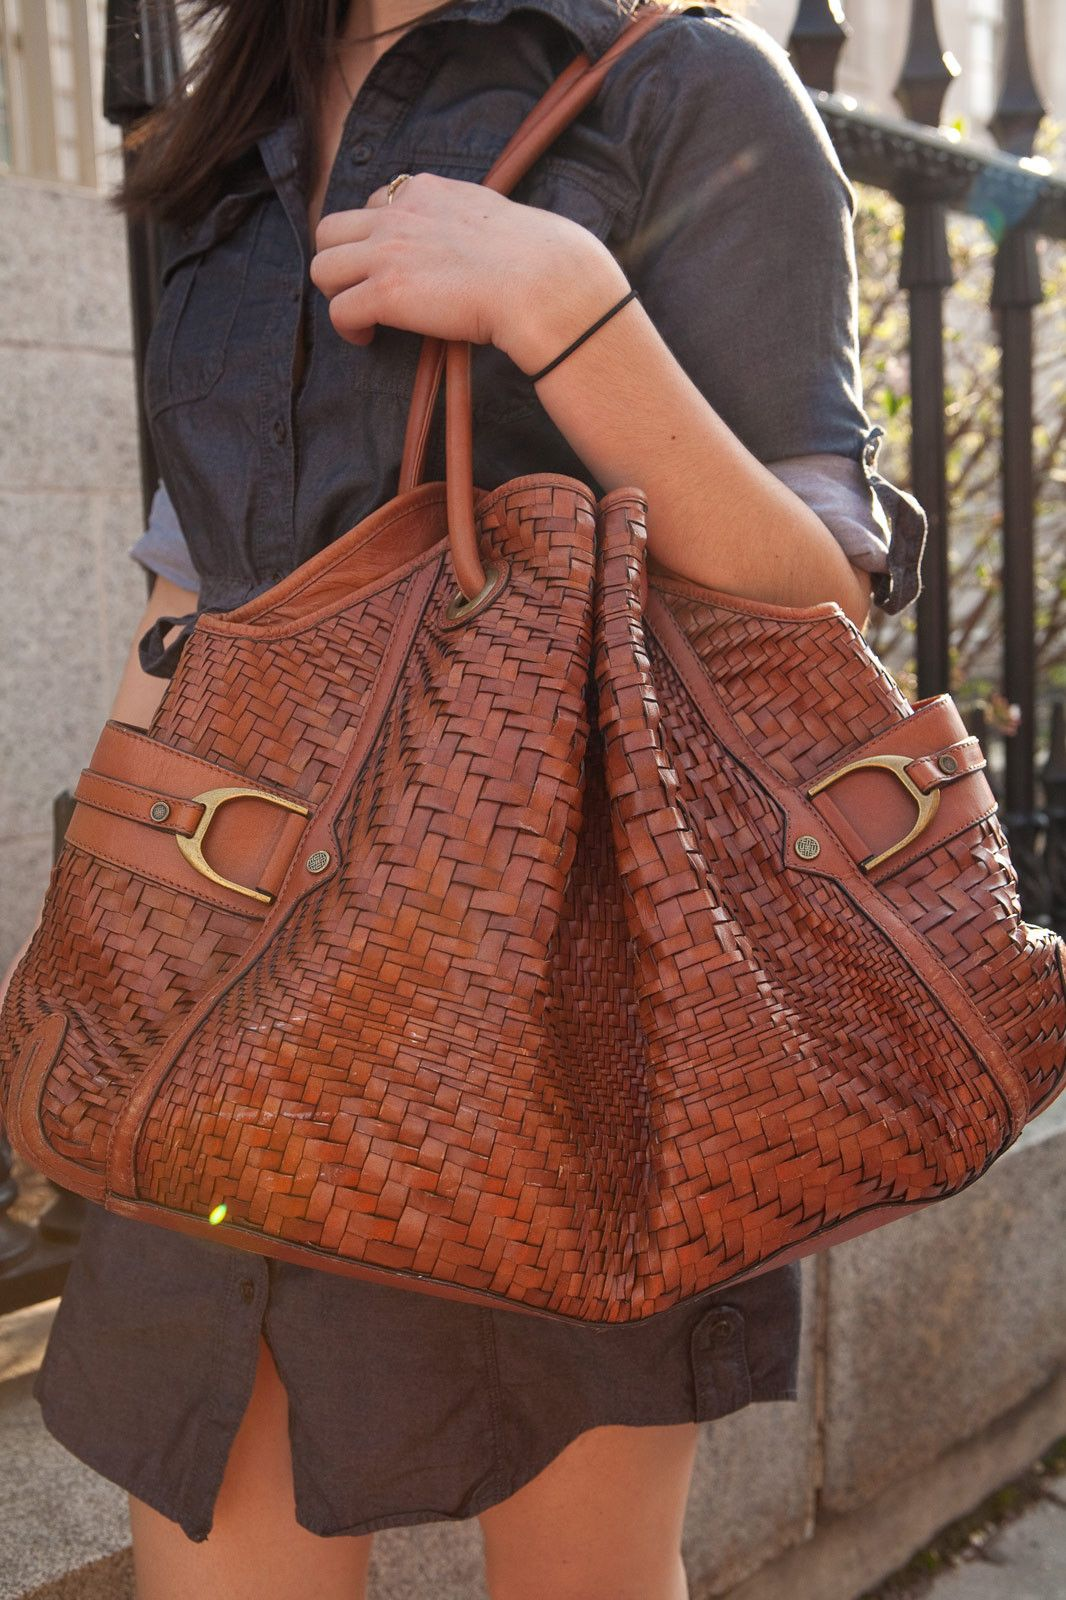 Hannah Madoff Teacher Cole Haan Bag Photographed By Denisio Truitt Refinery29 Handbag Pictures Washington Dc Slide 14